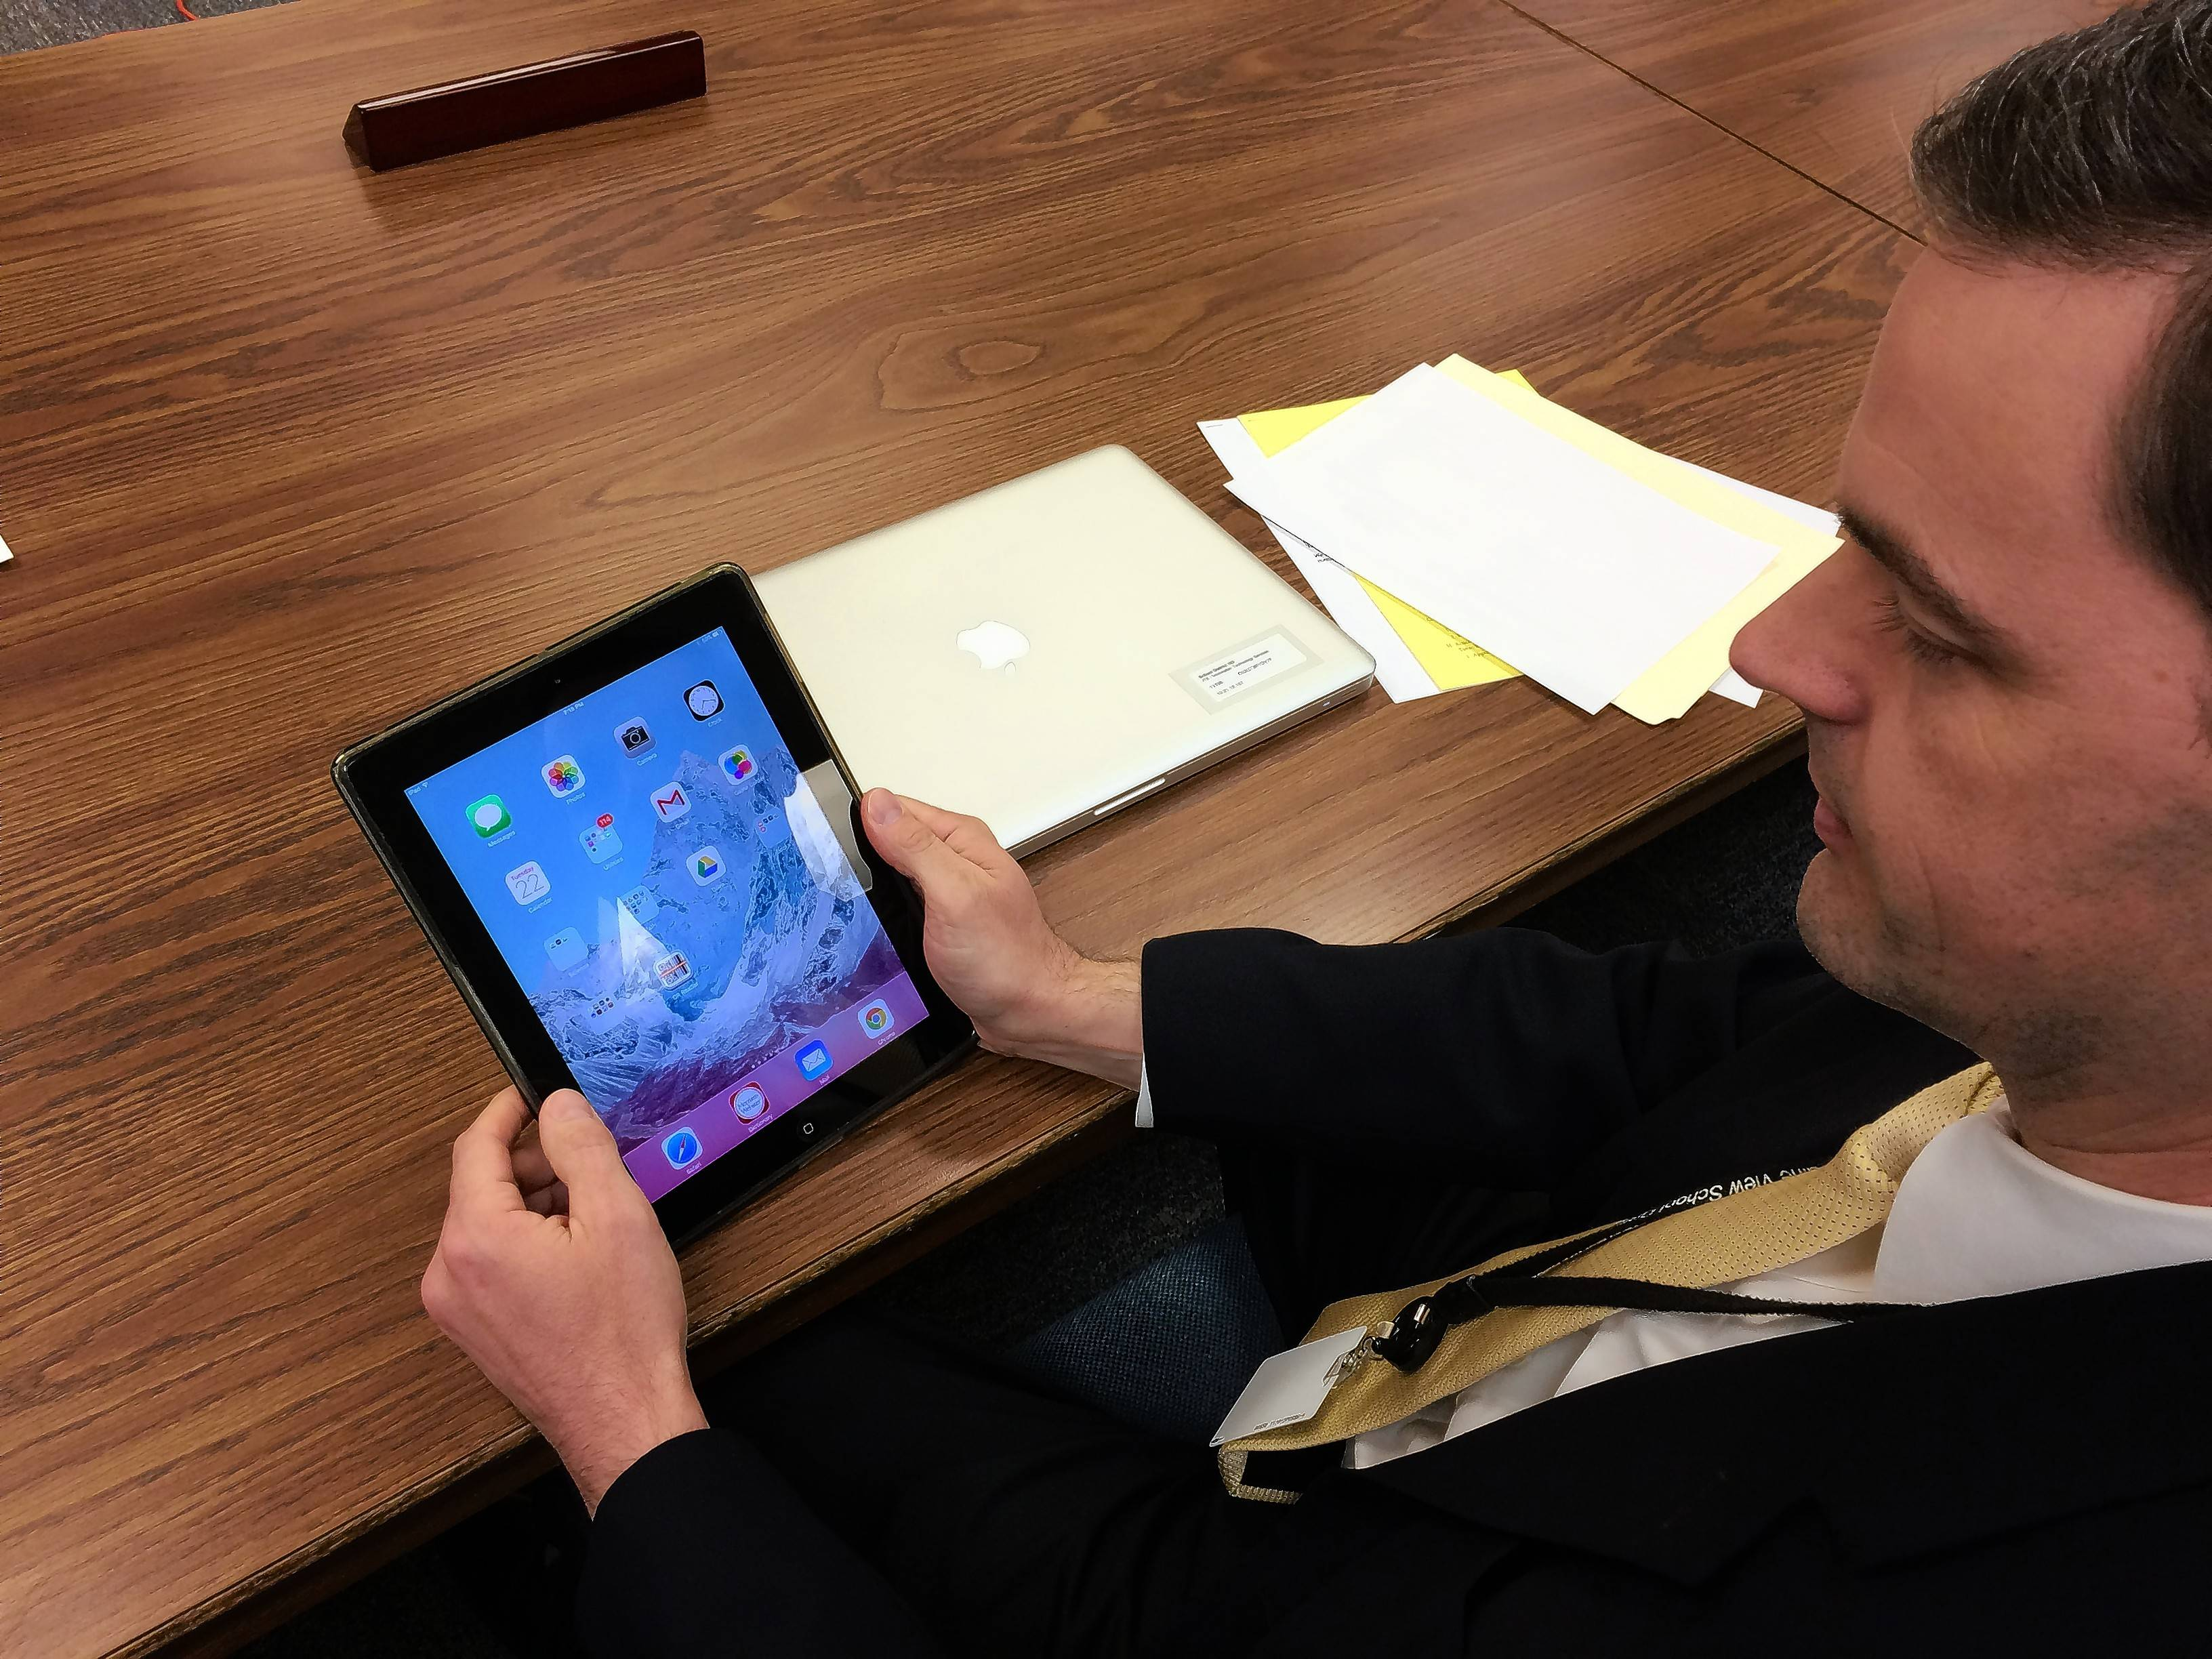 More school-owned iPads for Sprague students